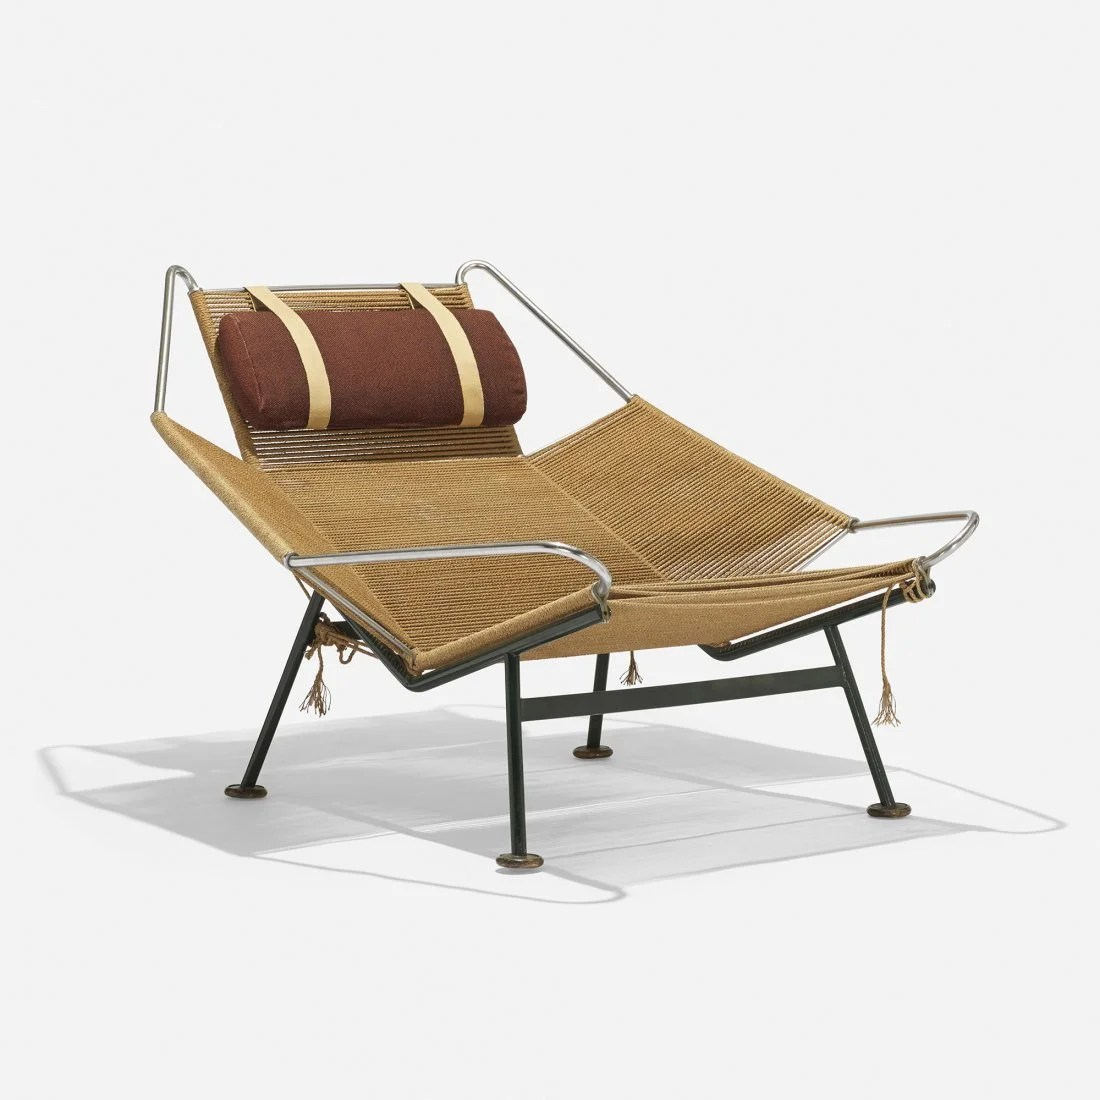 Flag Halyard Chair Hans Wegner Flag Halyard Chair